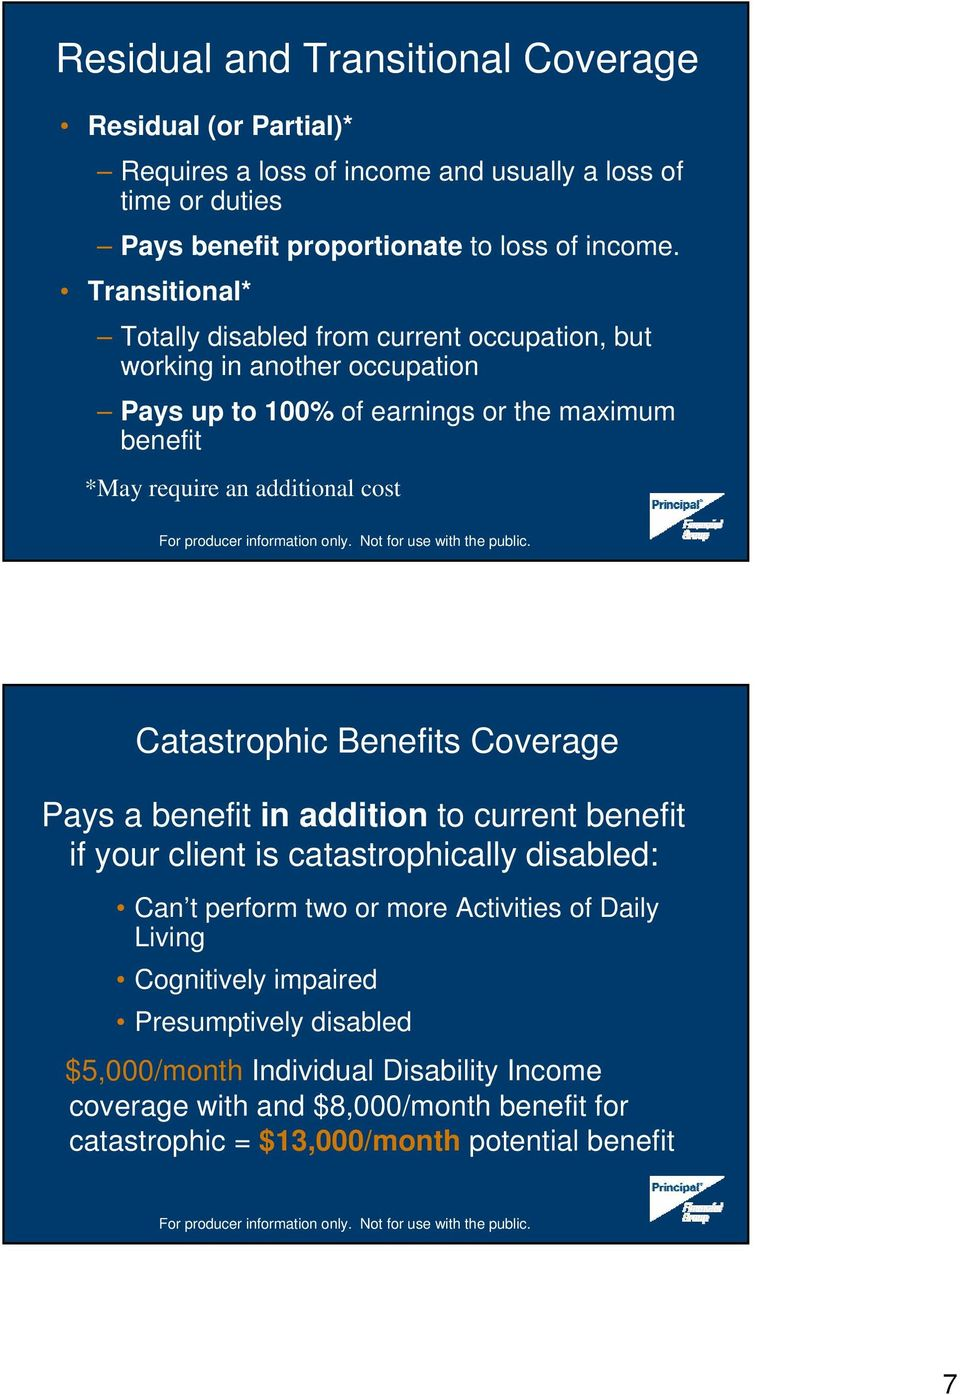 Catastrophic Benefits Coverage Pays a benefit in addition to current benefit if your client is catastrophically disabled: Can t perform two or more Activities of Daily